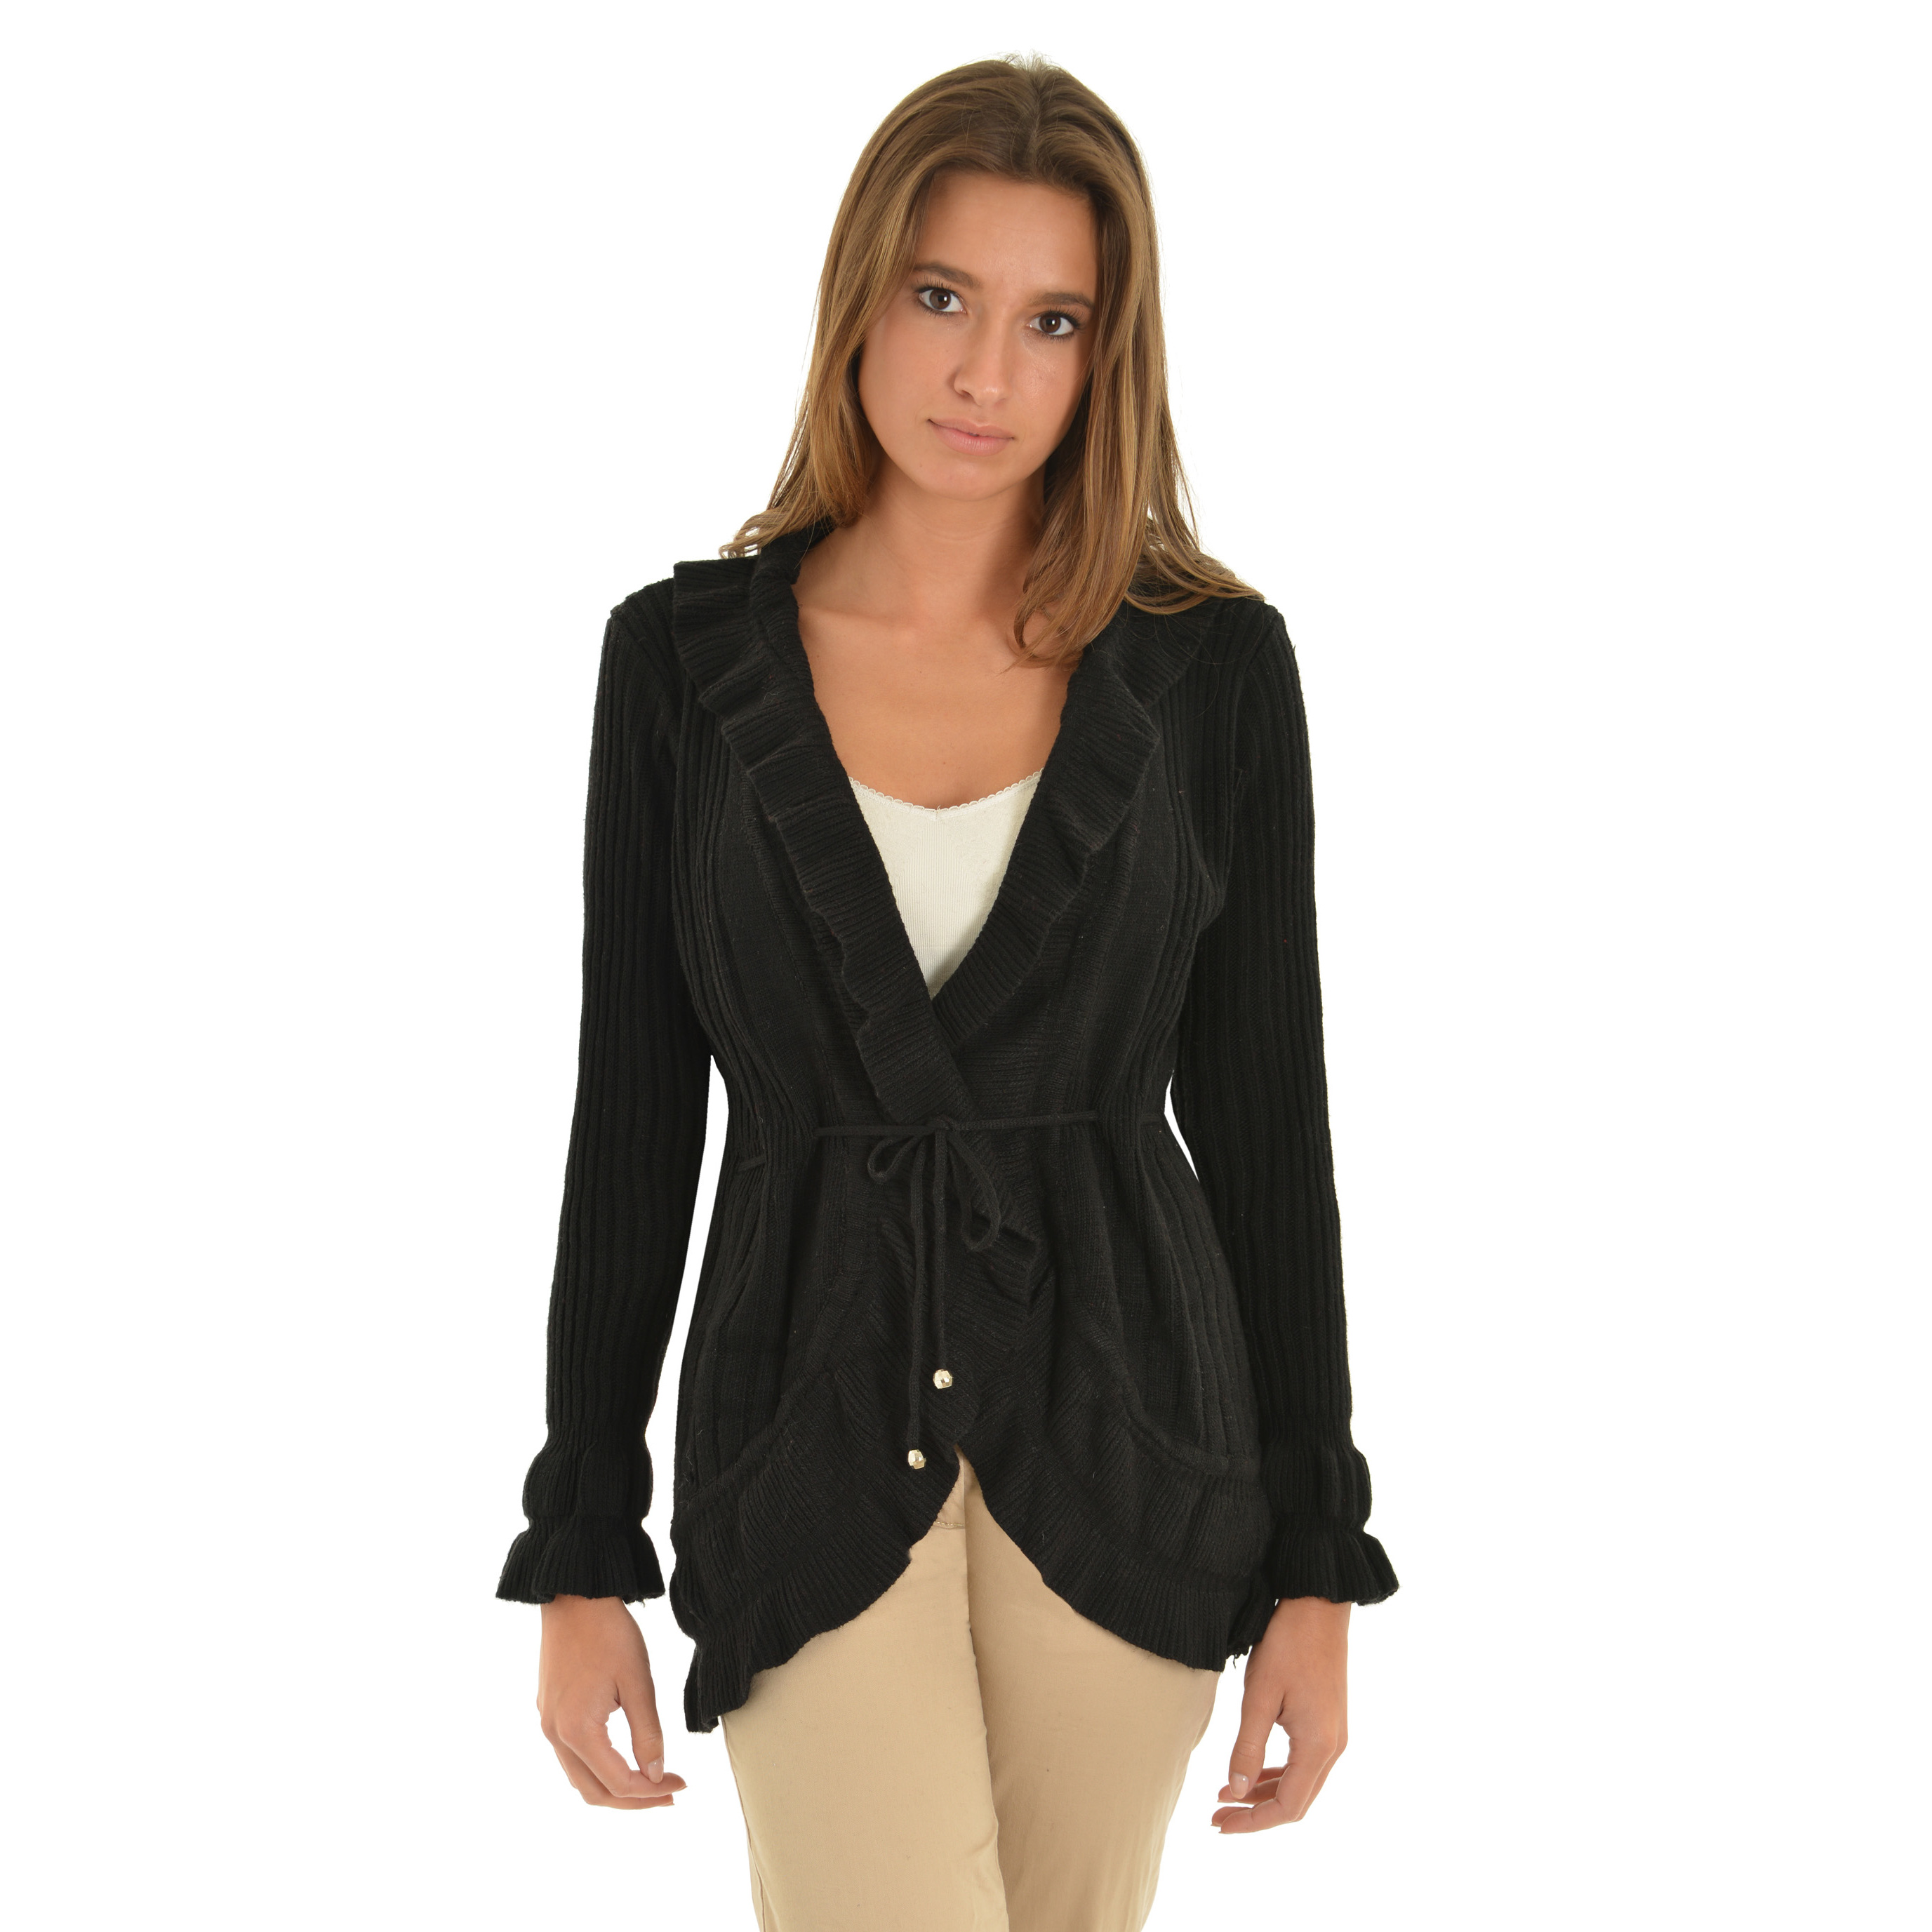 Womens Black Cardigan Sweater High Low Ribbed Knit Sweater Tie ...